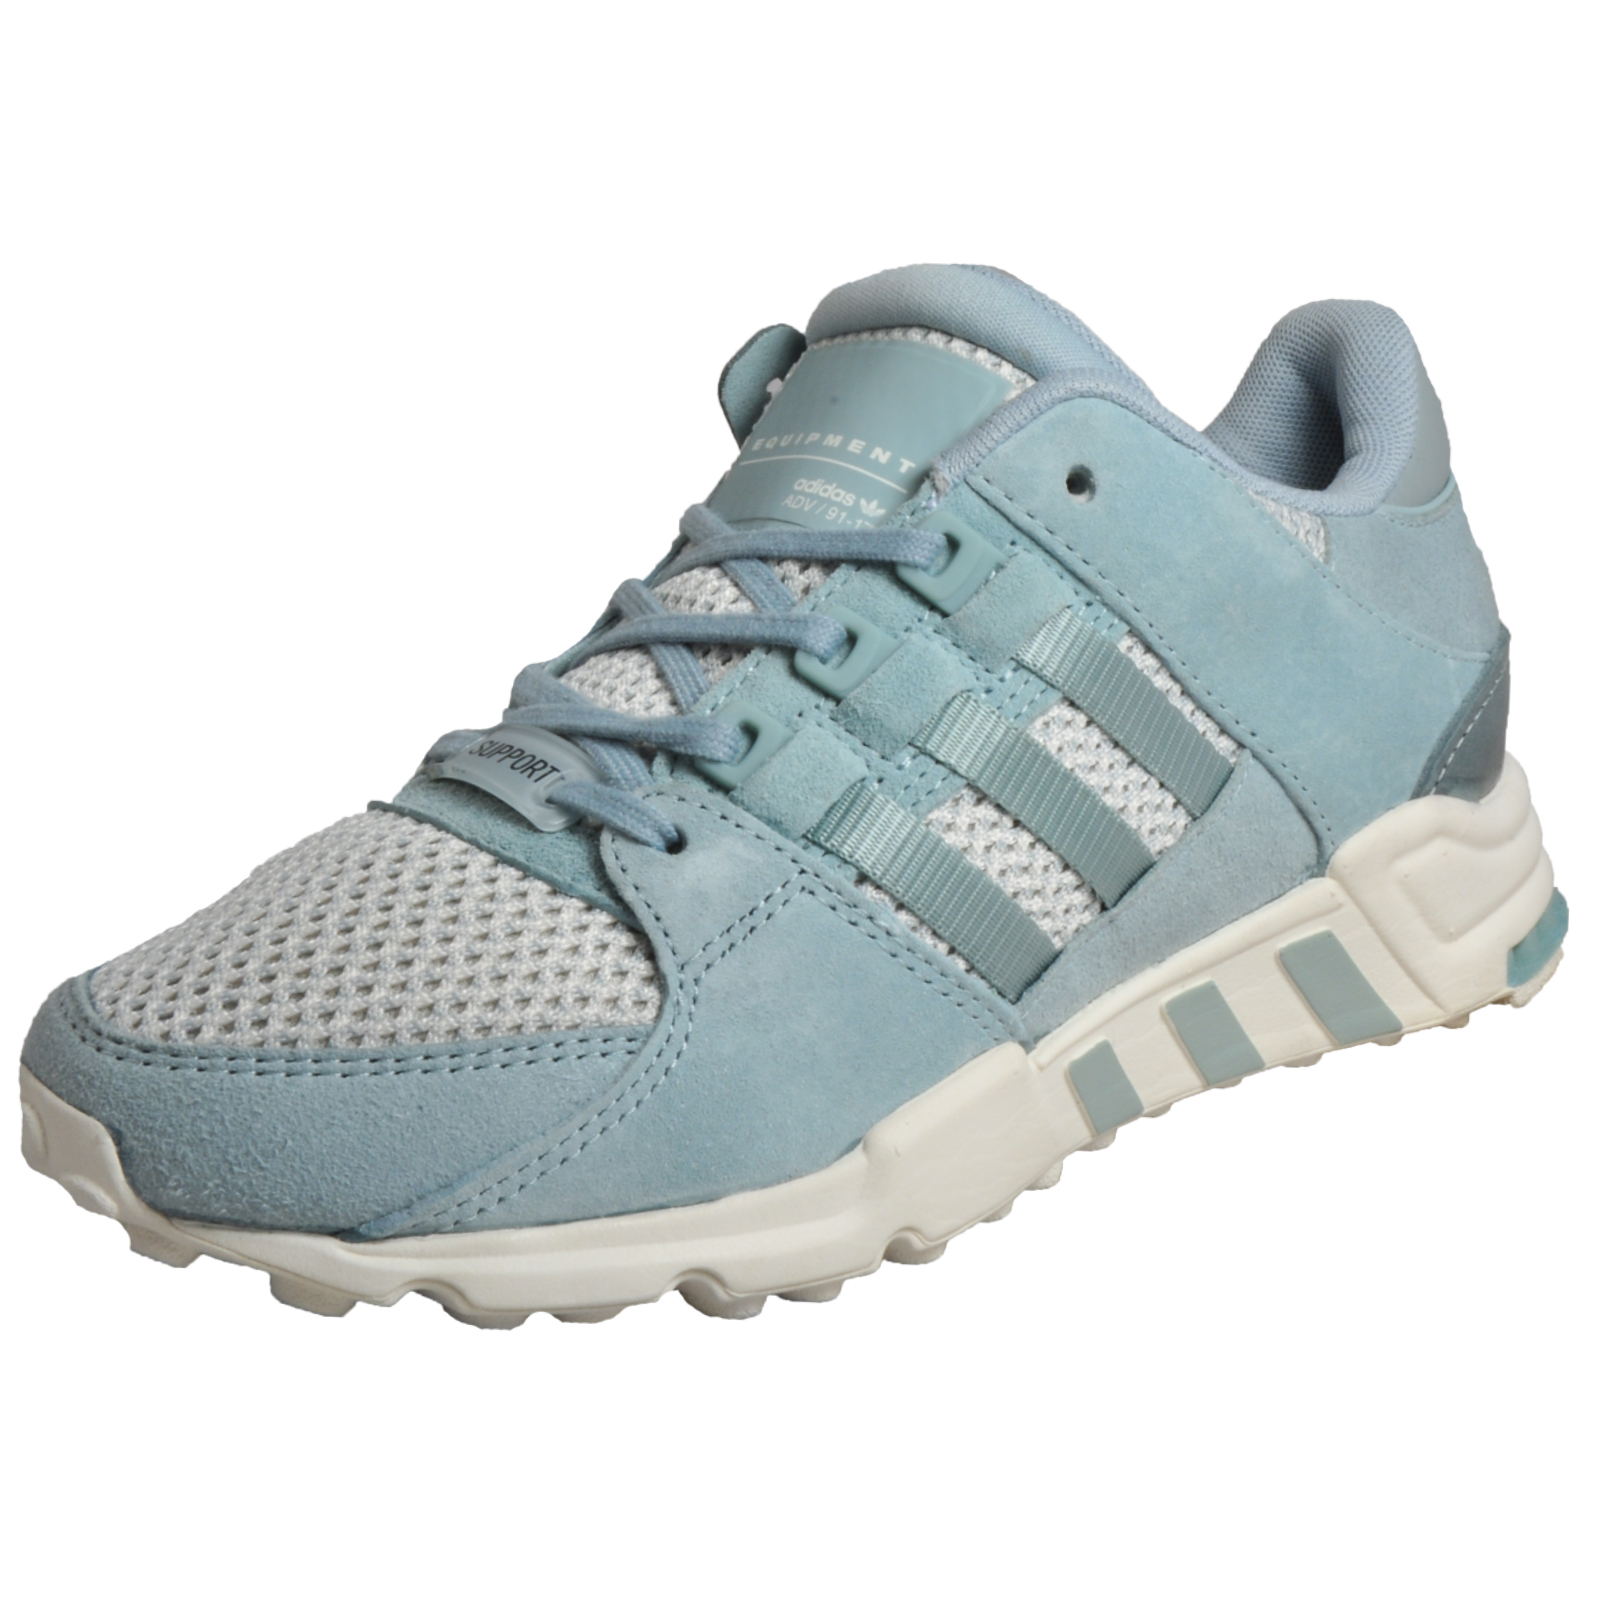 factory authentic 1e9a2 9316e Details about Adidas Originals EQT Support RF Women's Fitness Gym Workout  Trainers Green